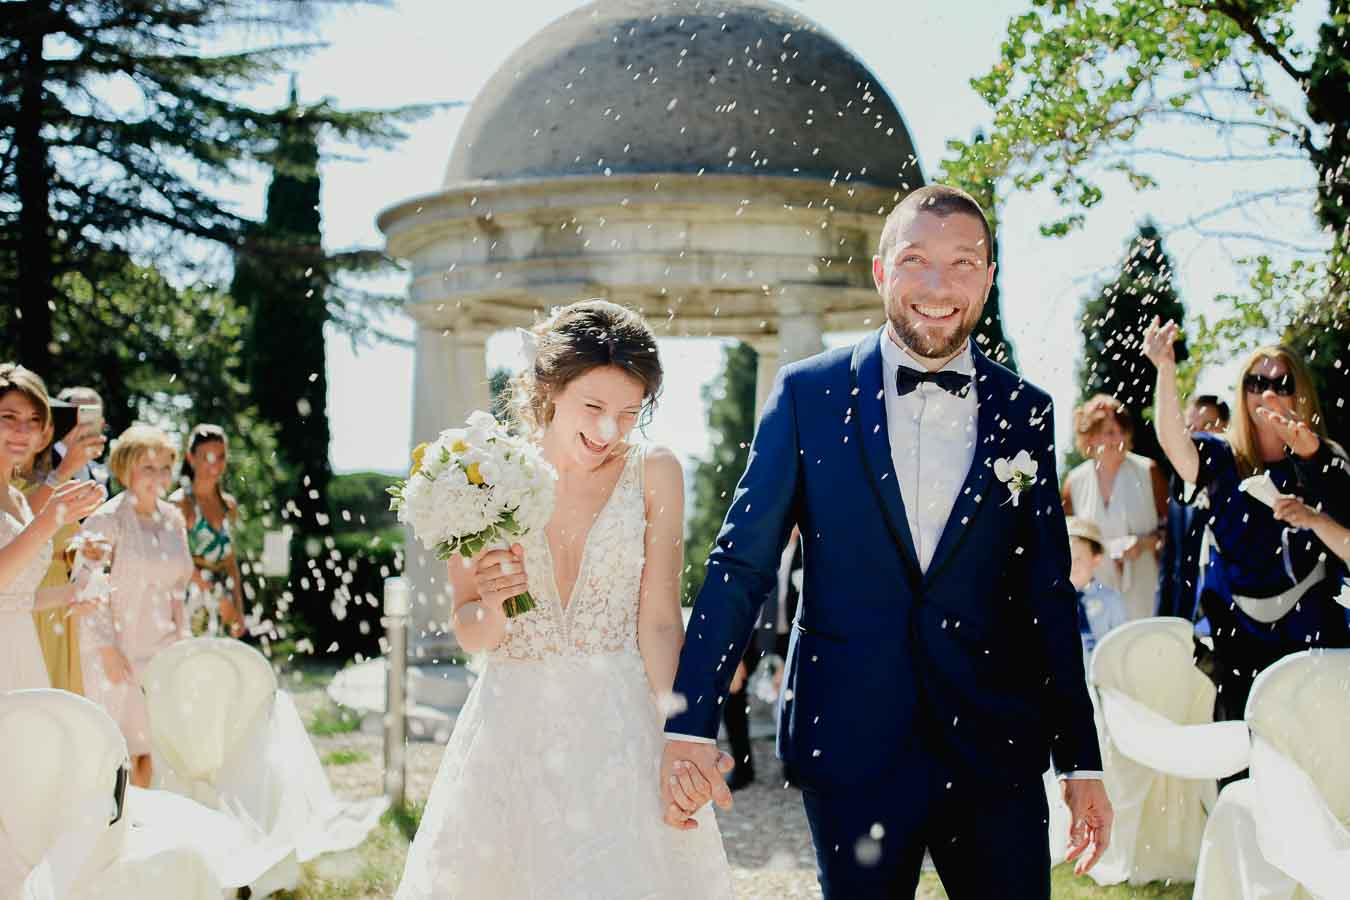 wedding happyness Luca Savino photographer Trieste Italy